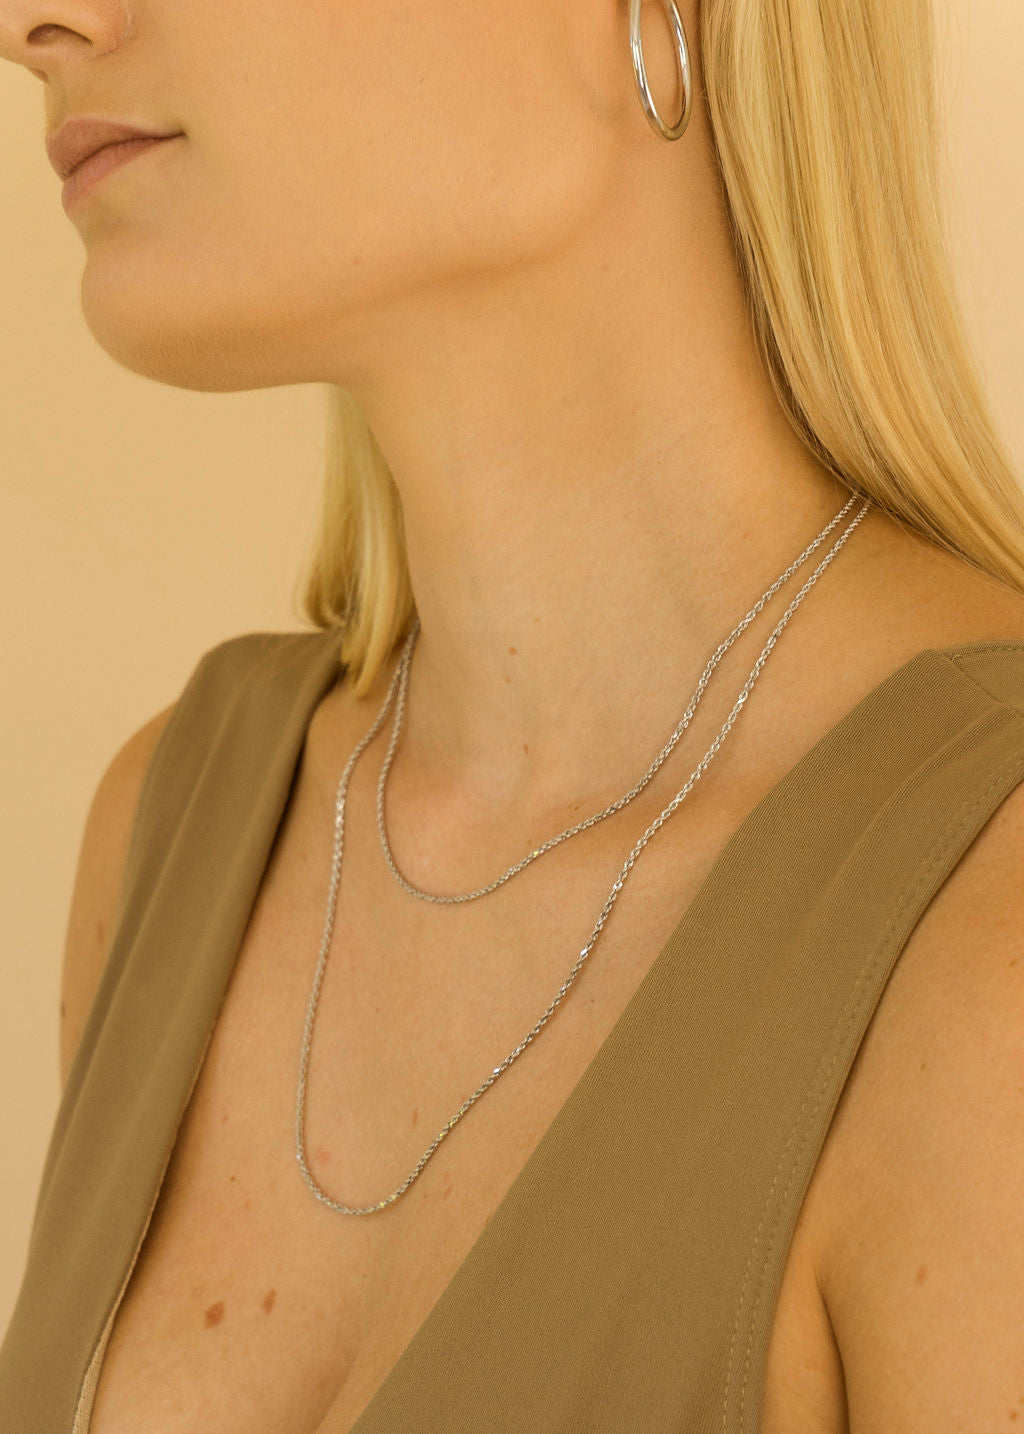 Karady Rope Chain | White Gold